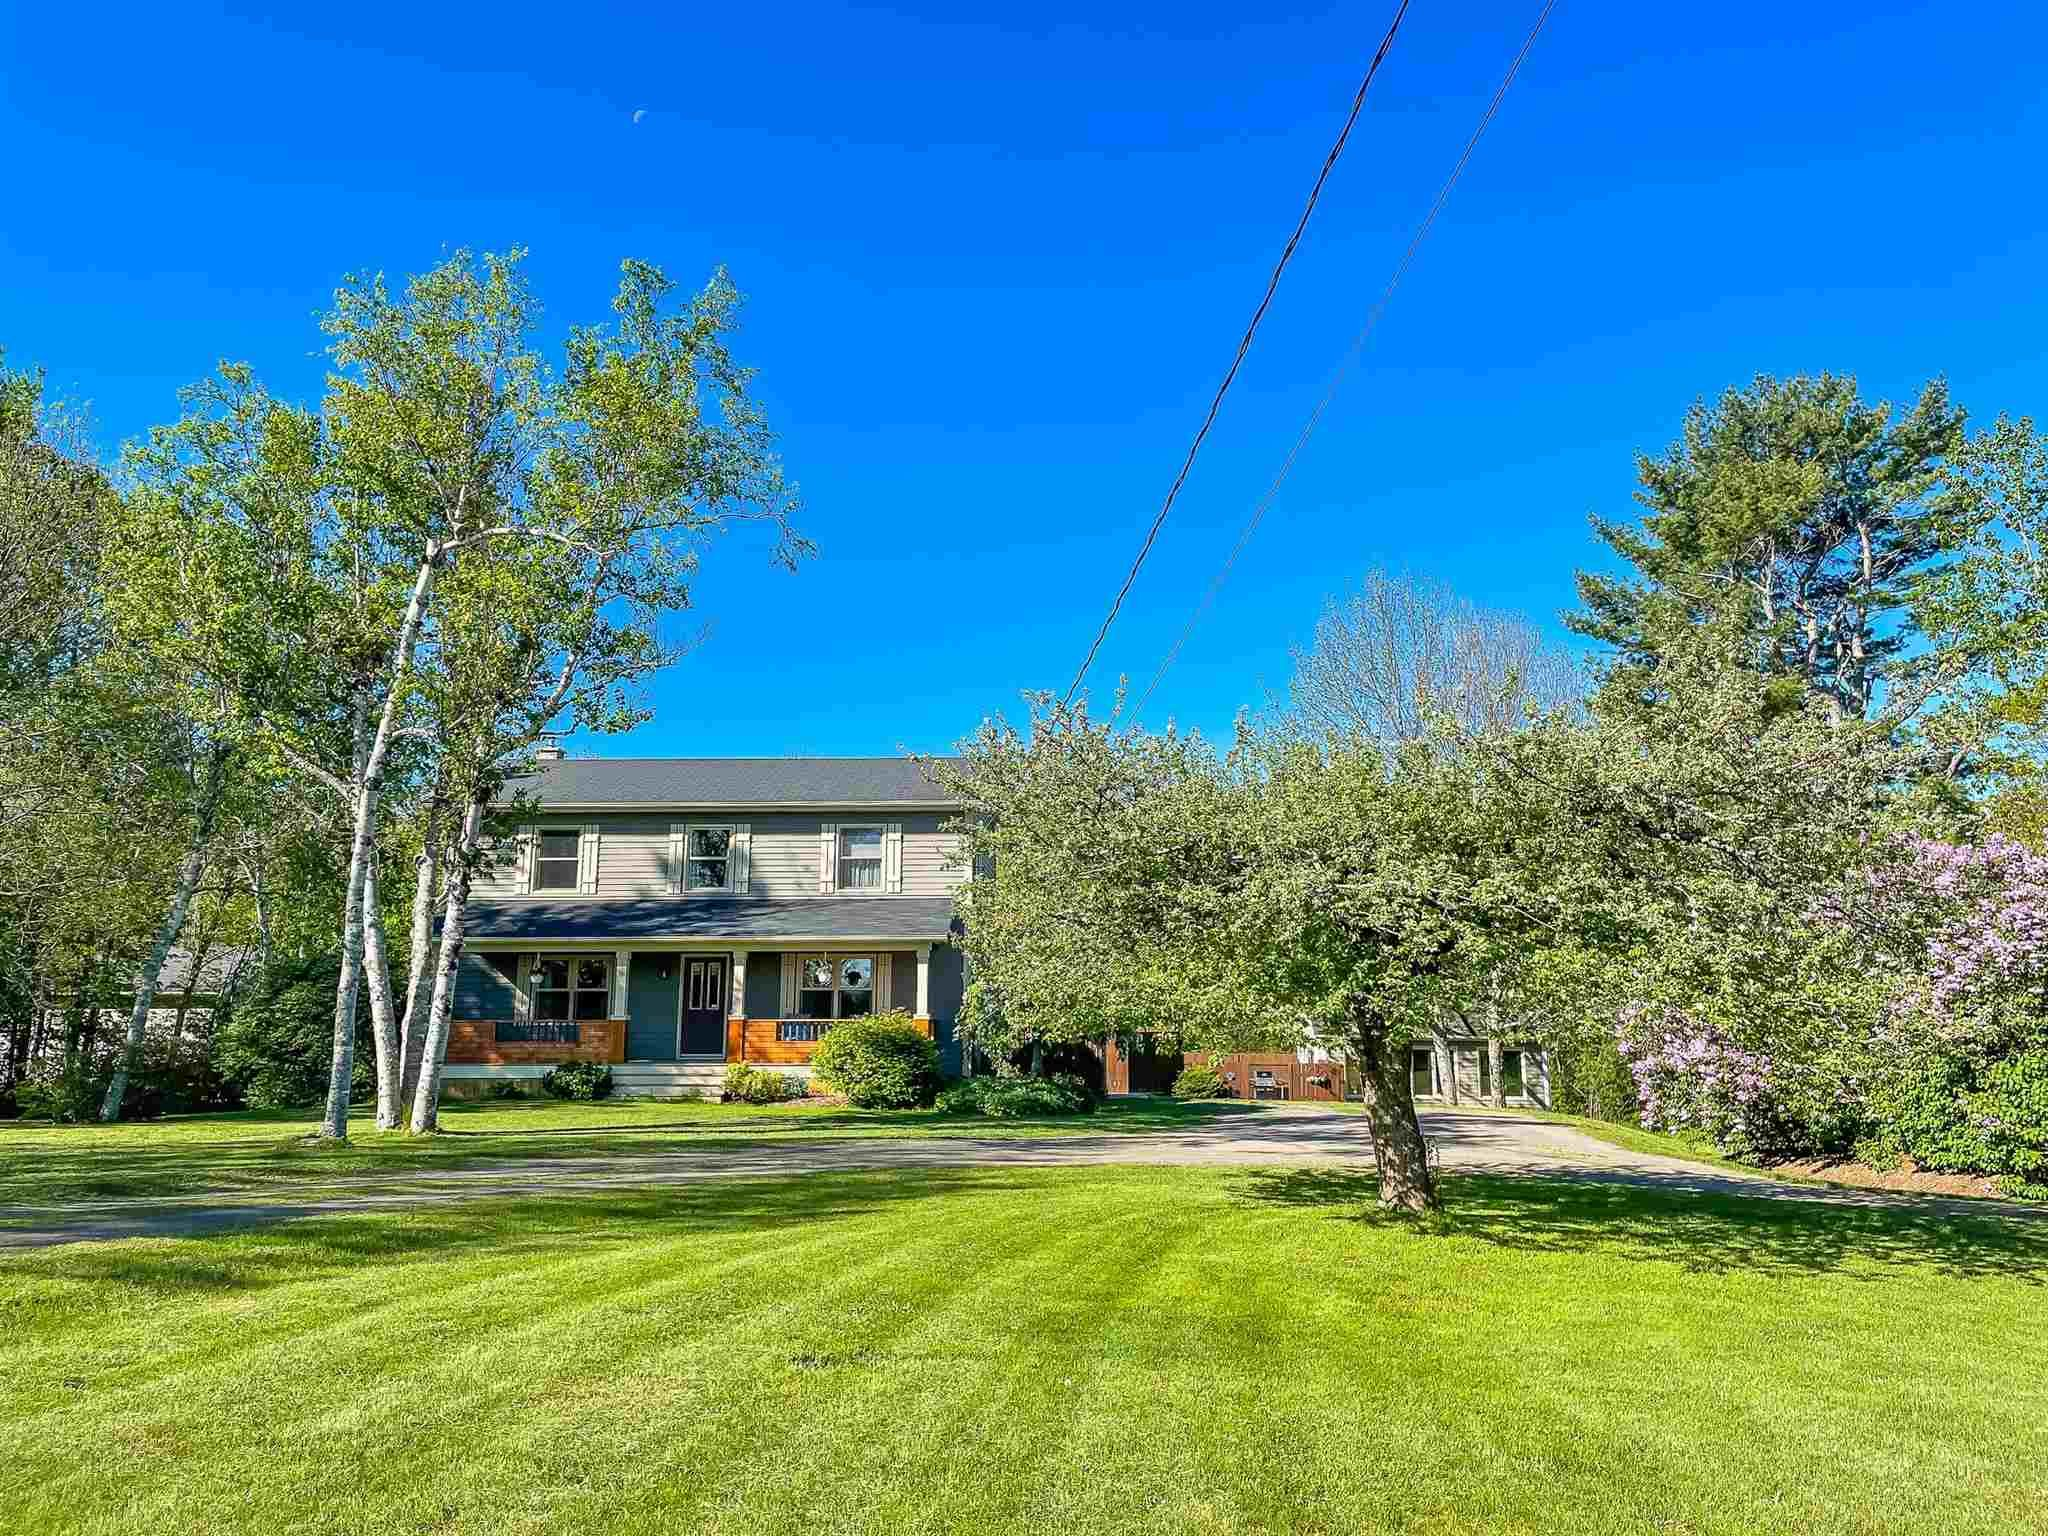 Main Photo: 375 West Black Rock Road in West Black Rock: 404-Kings County Residential for sale (Annapolis Valley)  : MLS®# 202108645